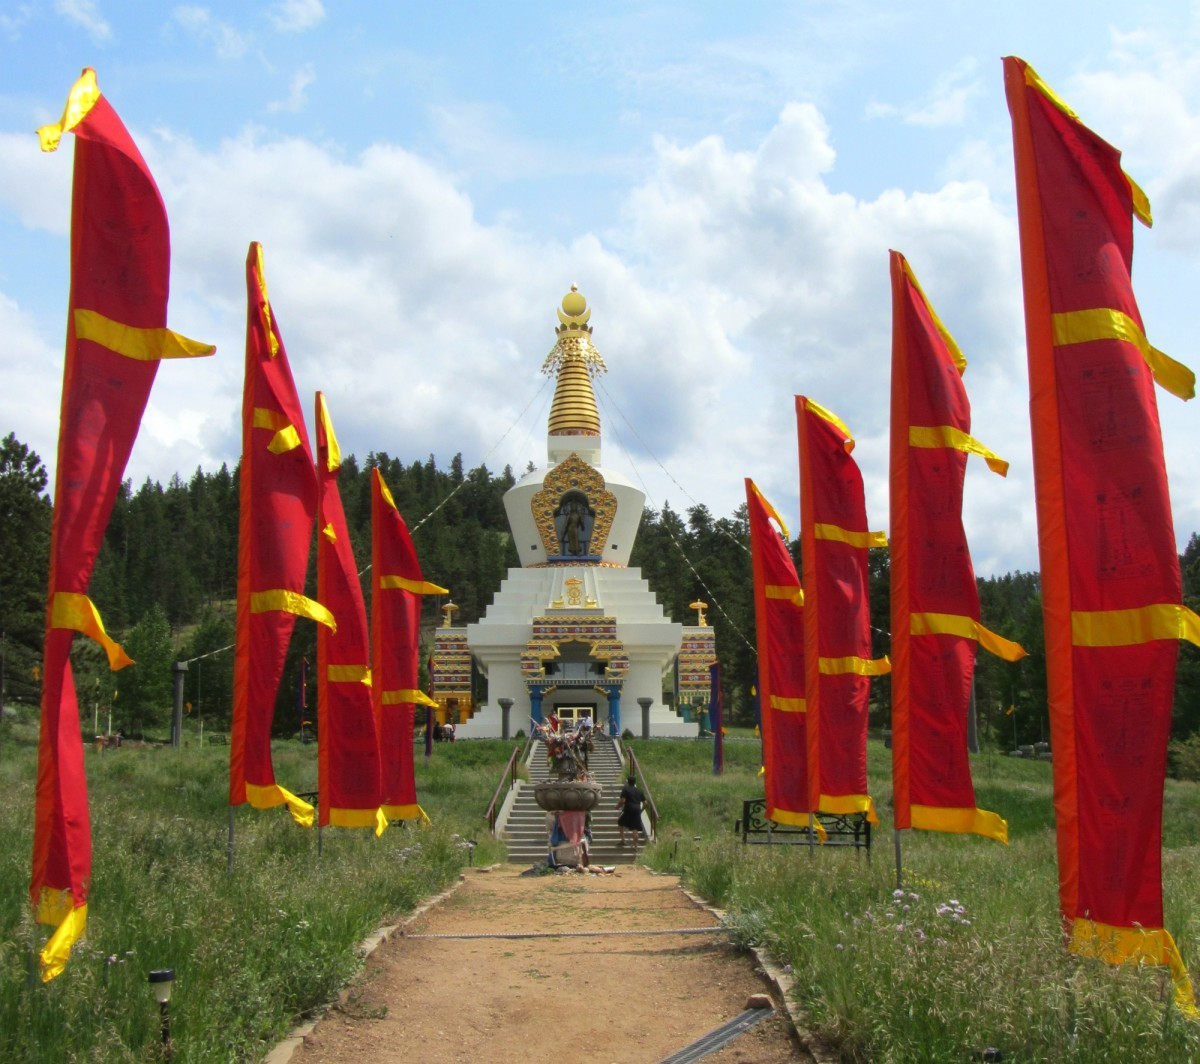 The Great Stupa of Dharmakaya: A Buddhist Shrine in the Colorado Rockies